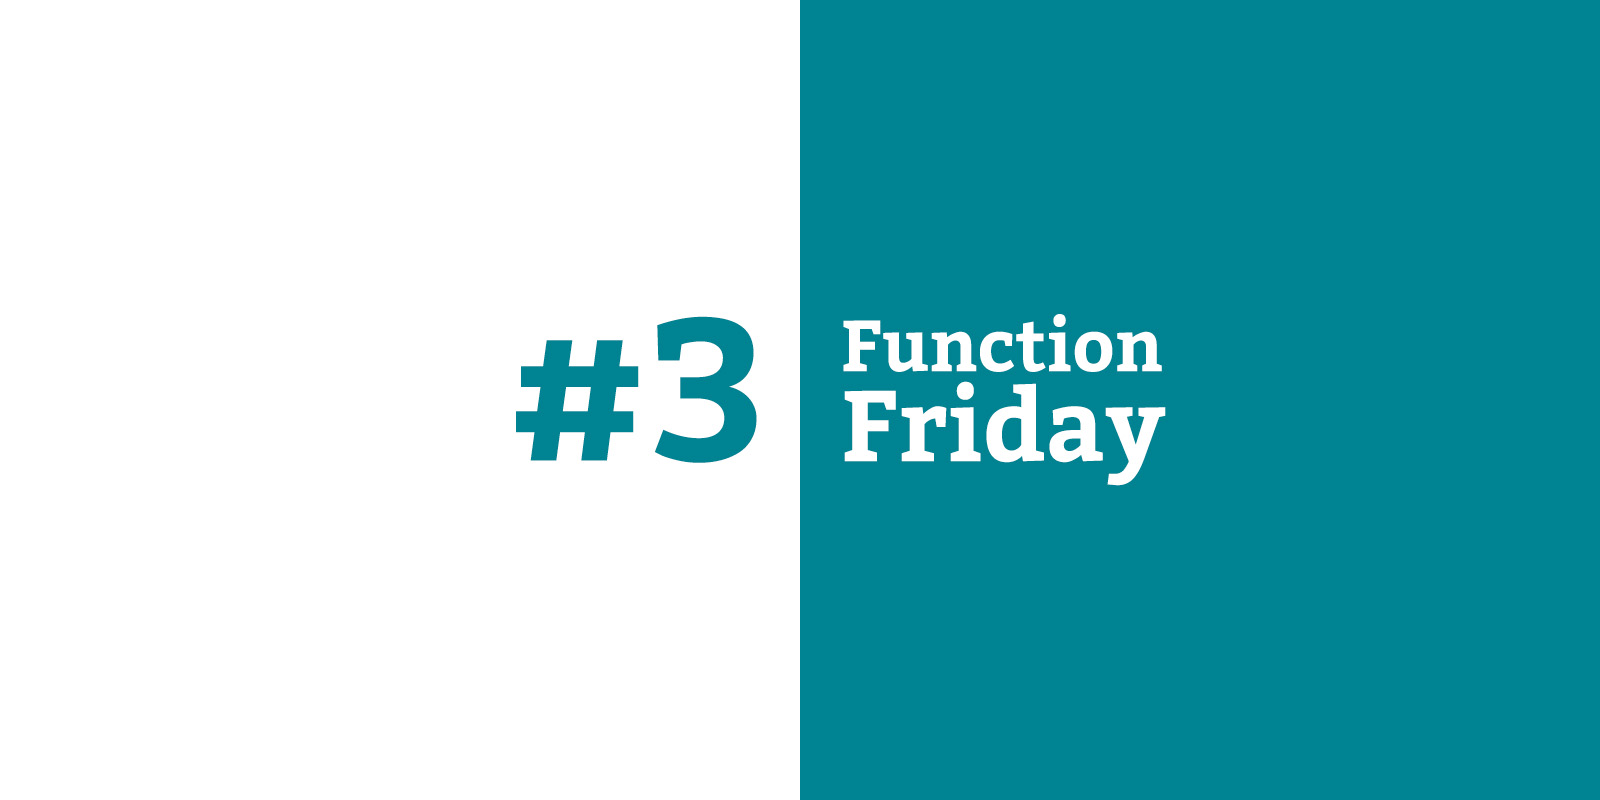 Function Friday #3